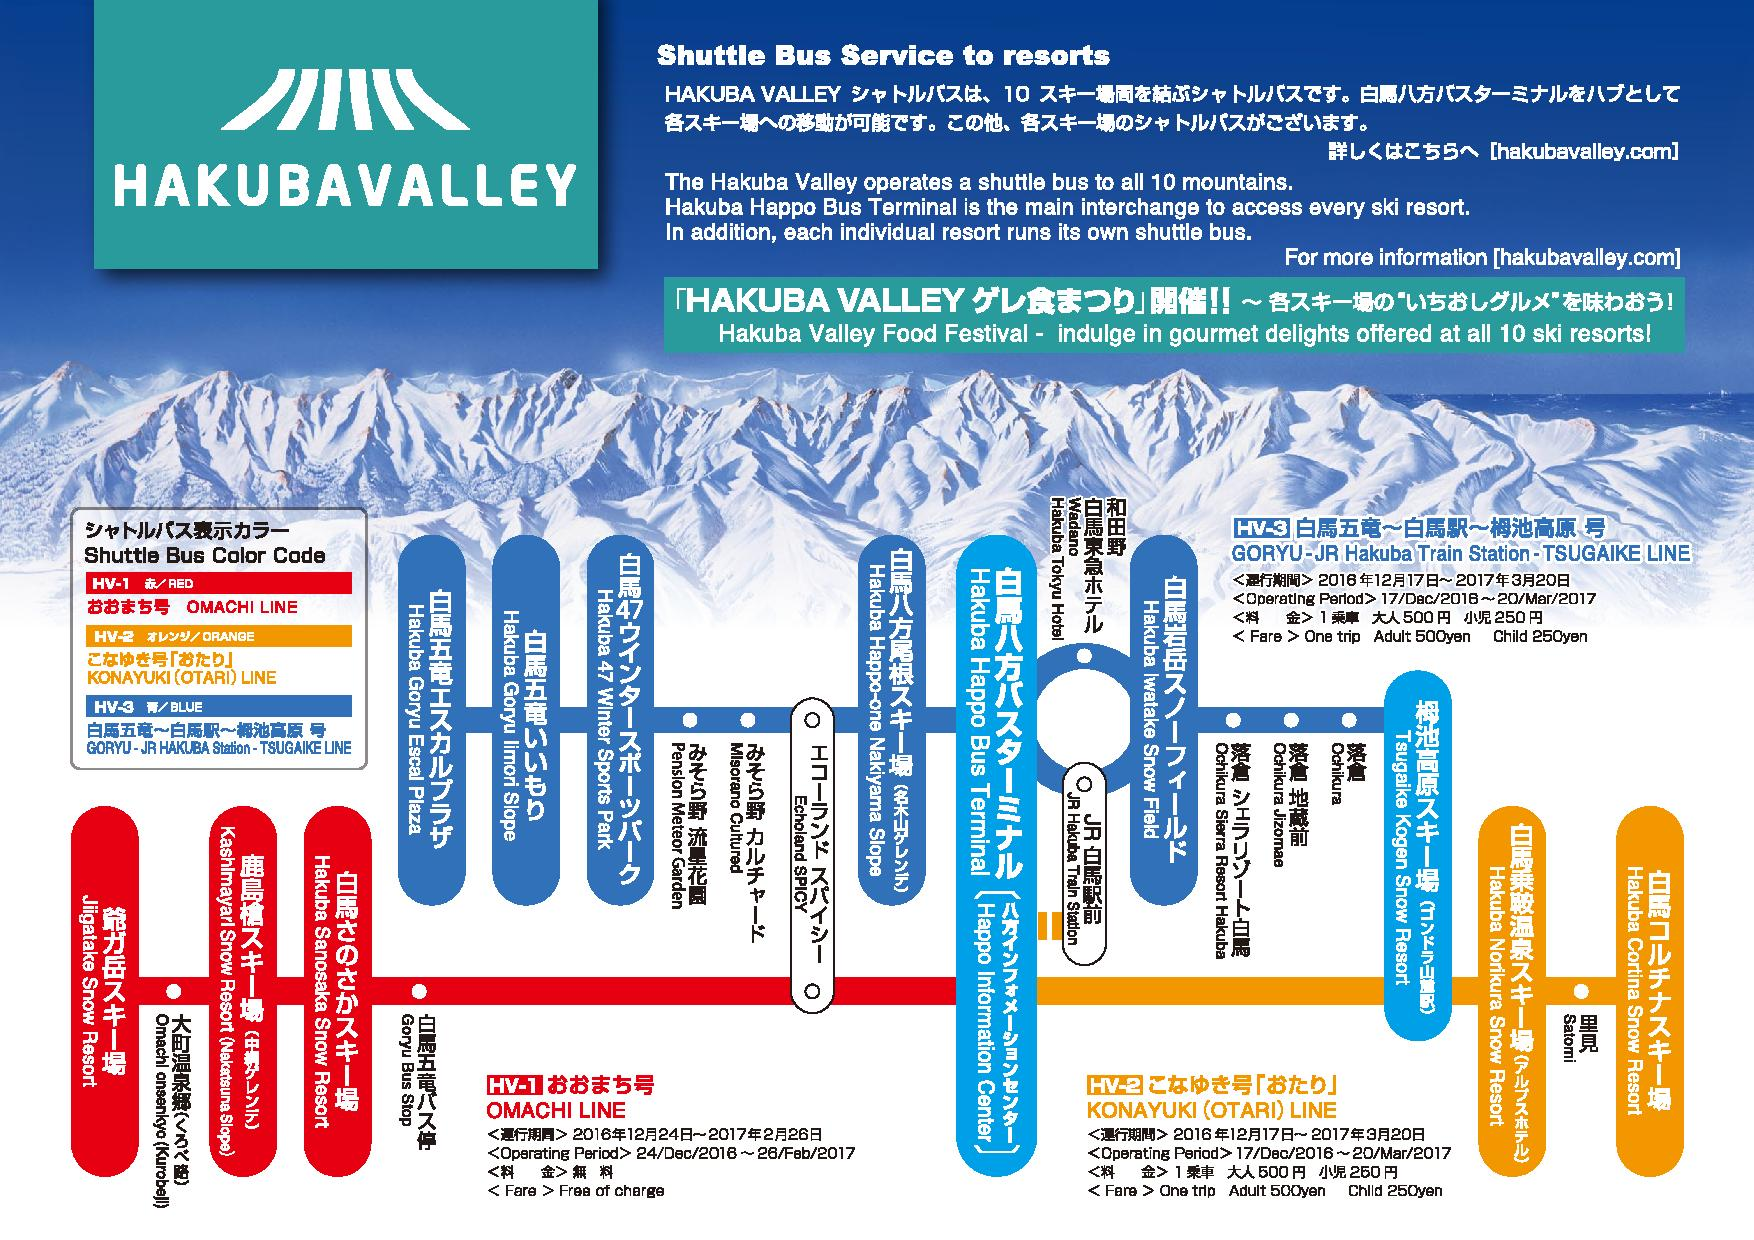 hakuba valley shuttle bus timetable